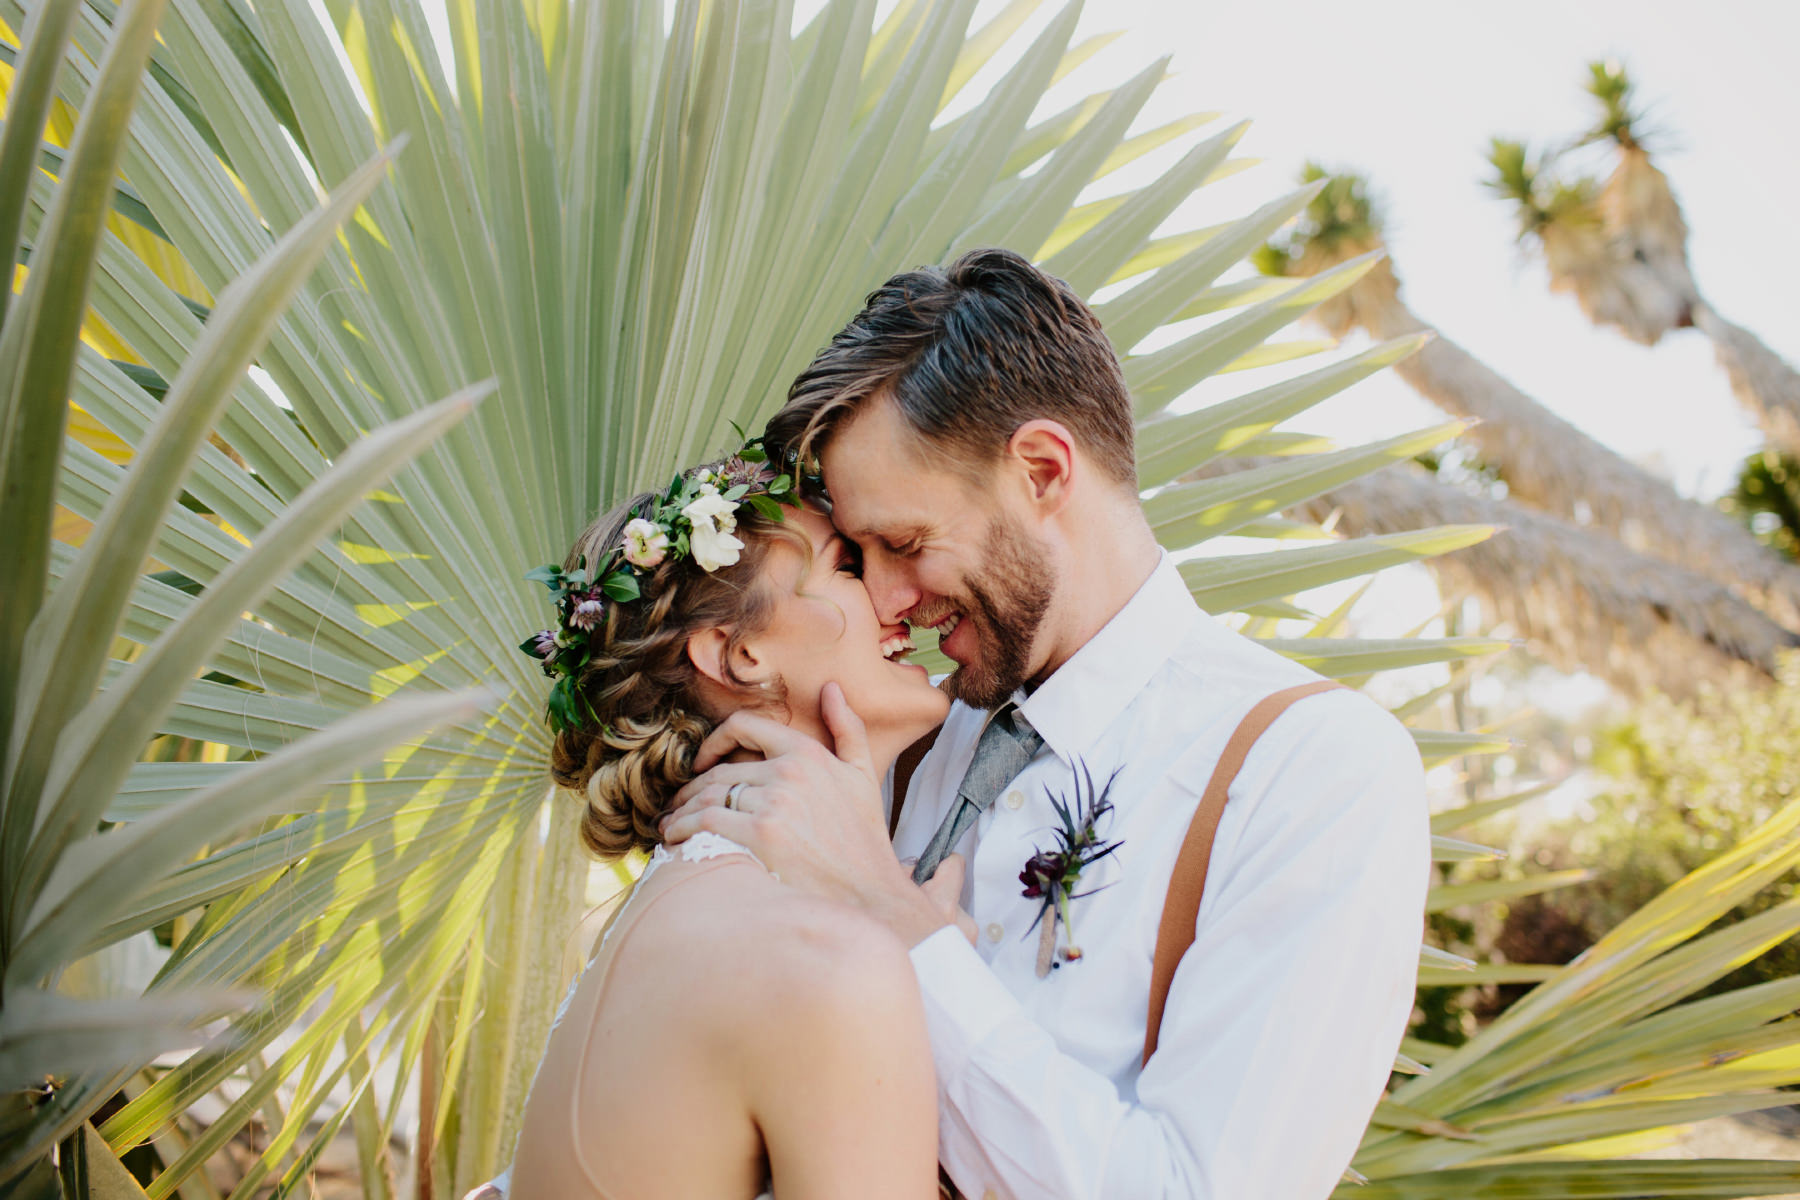 Bride and groom portraits at Balboa Park cactus garden